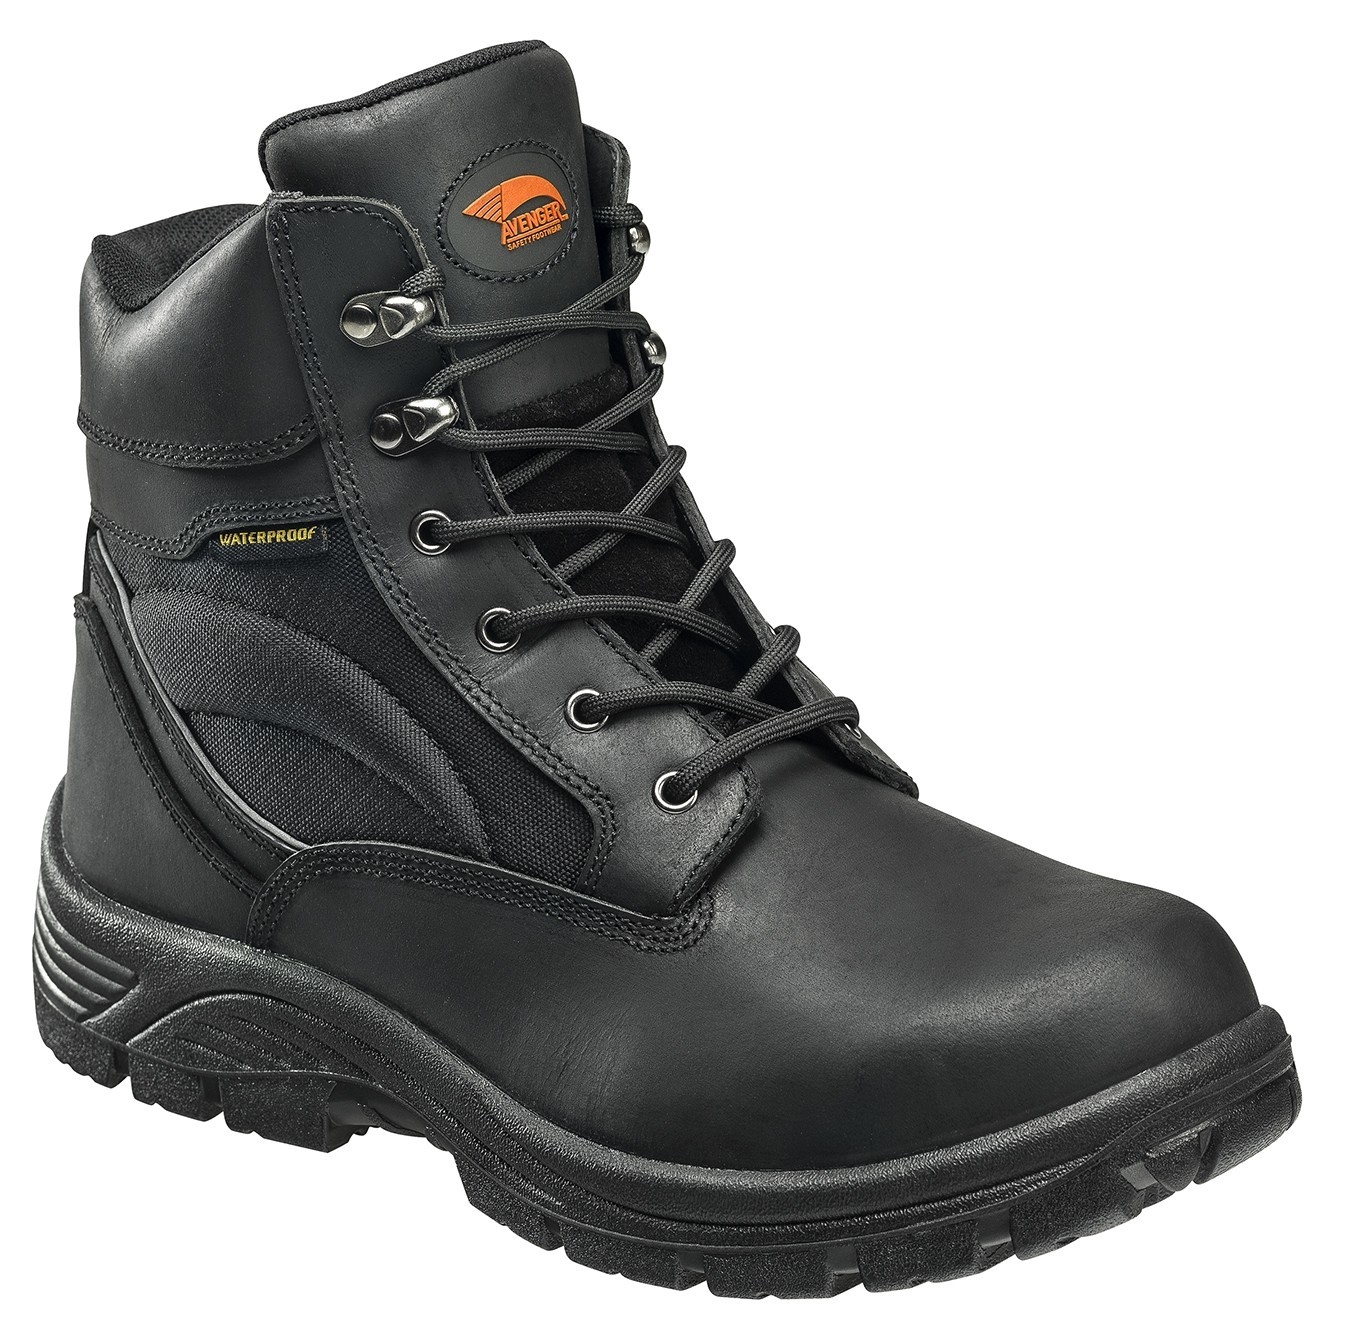 Avenger Steel Toe Waterproof Boot